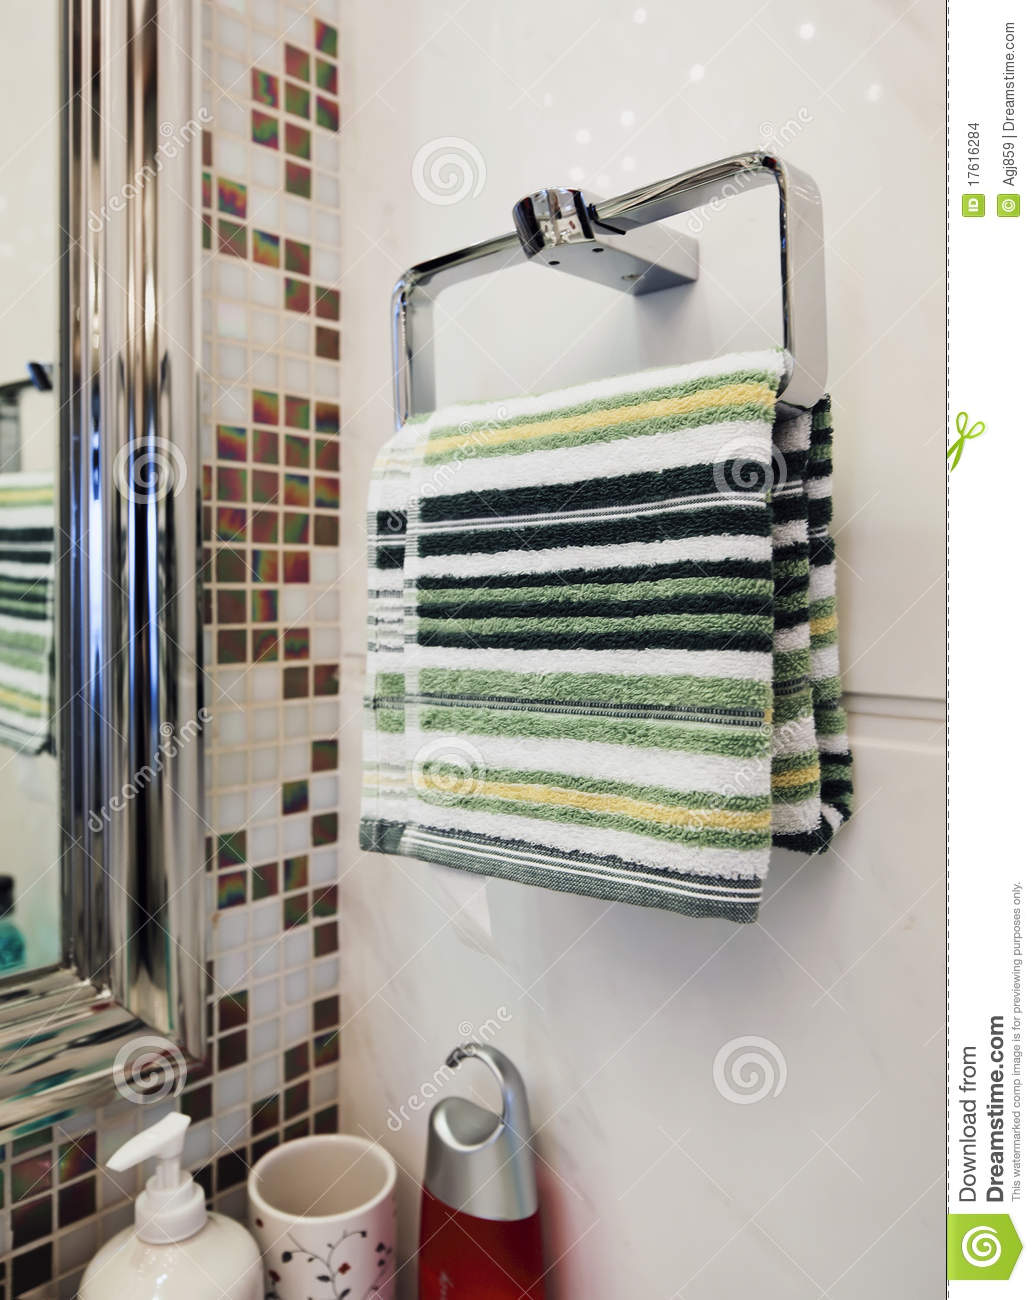 Towels hanging on the wall stock images image 17616284 for Bathroom pictures to hang on wall